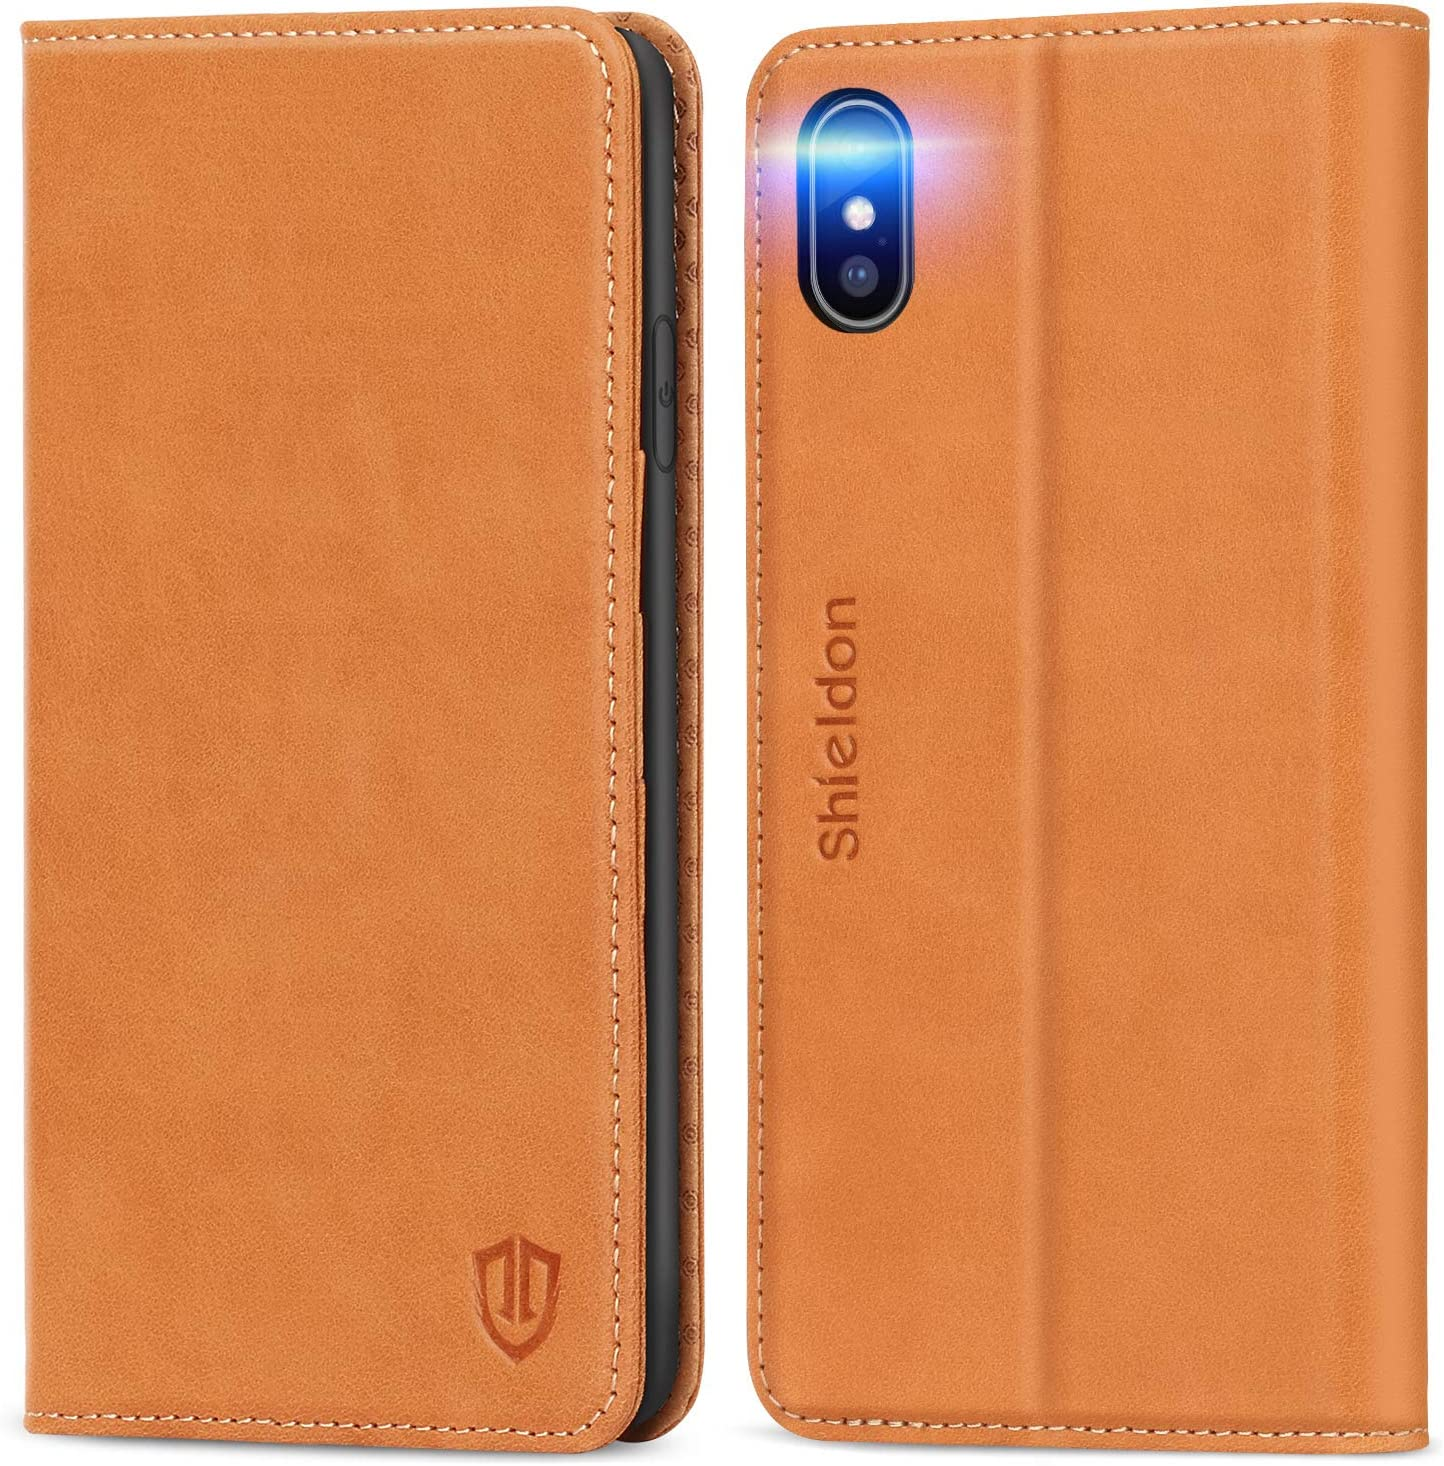 """SHIELDON iPhone Xs Max Case, Genuine Leather iPhone Xs Max Wallet Case Support Auto Wake/Sleep RFID Protective Card Holder Folio Magnetic Stand Cover Compatible with iPhone Xs Max (6.5"""") - Brown"""